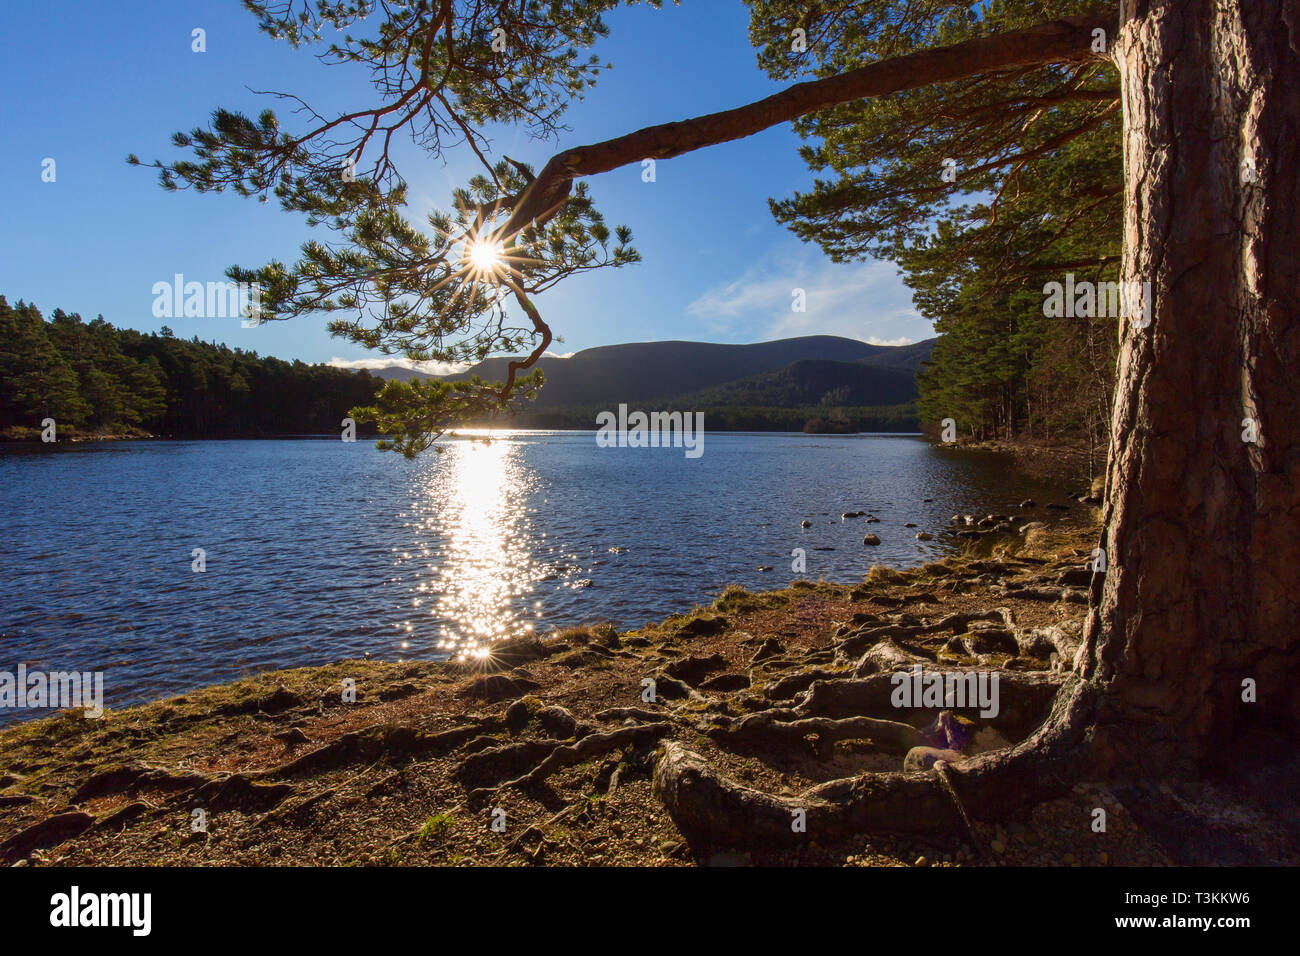 Loch an Eilein in the Rothiemurchus Forest, Cairngorms National Park near Aviemore, Badenoch and Strathspey, Scotland, UK - Stock Image